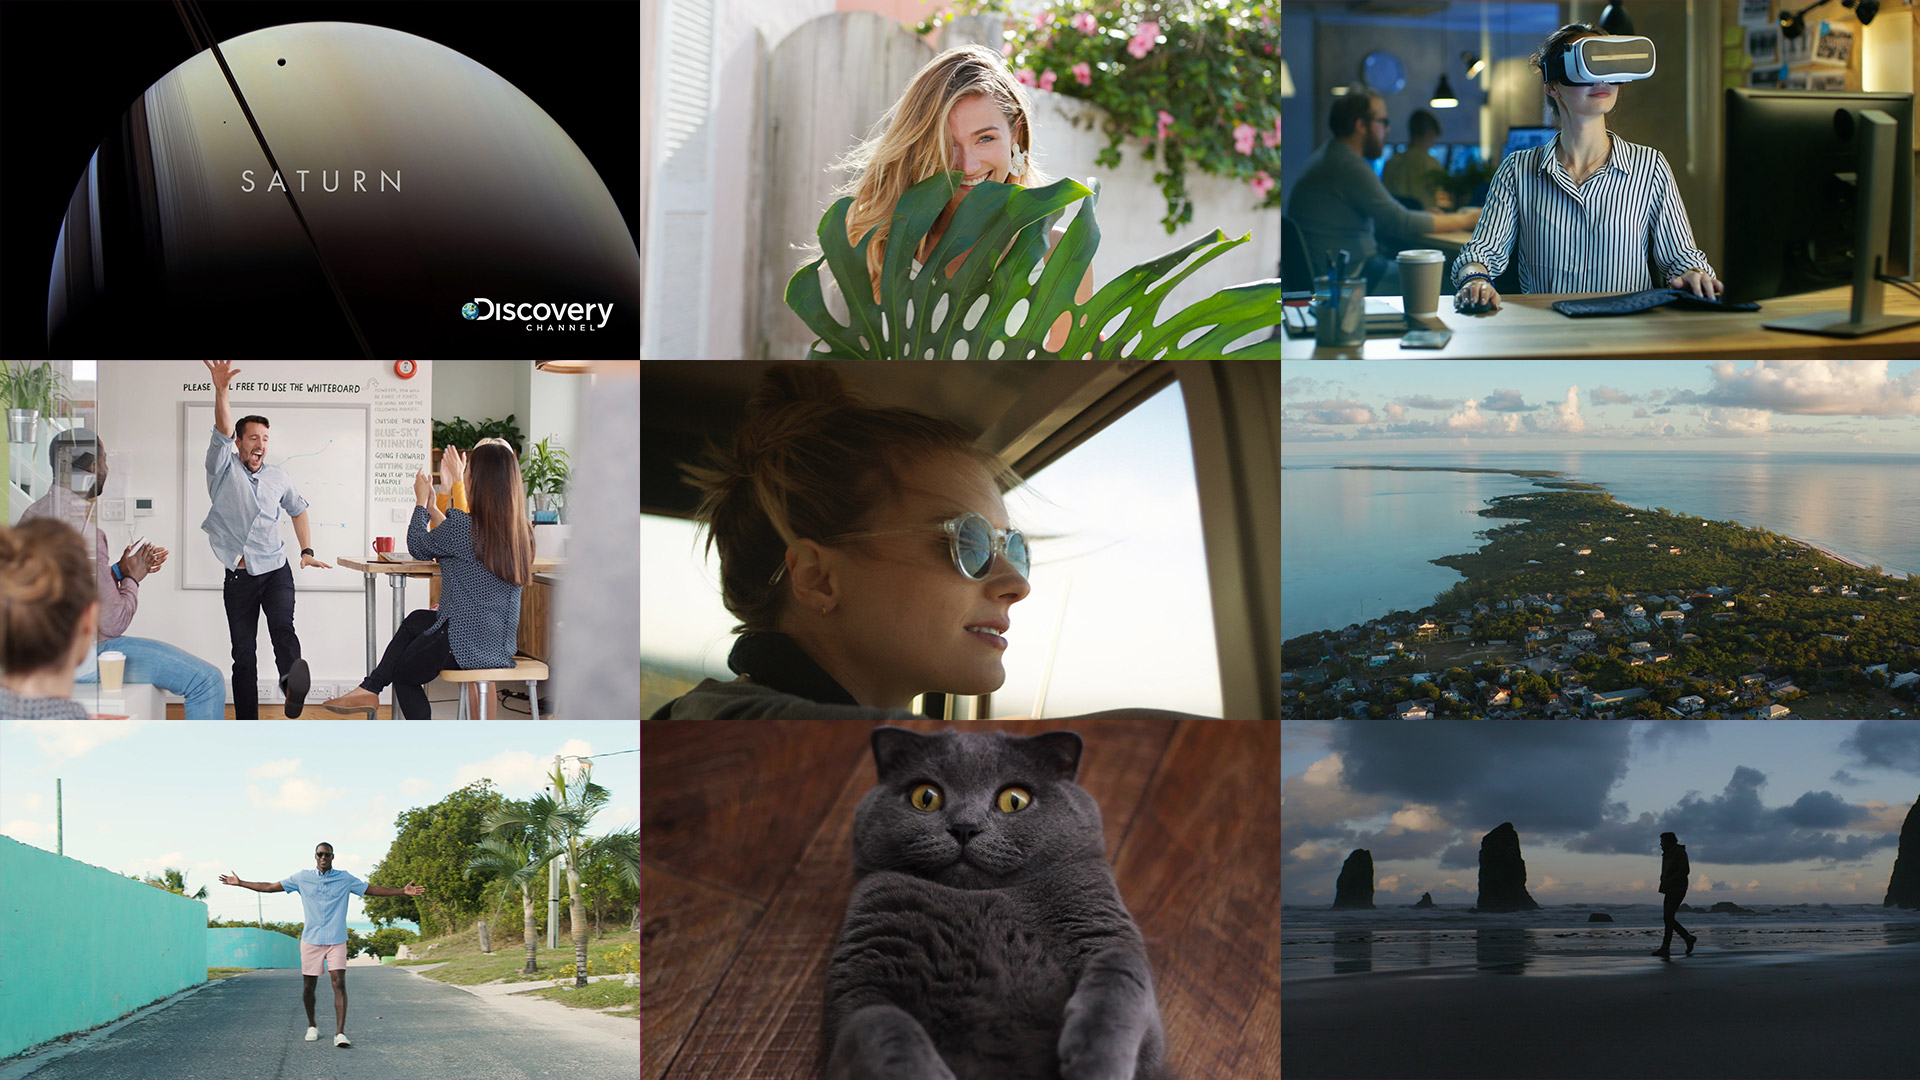 TELESCOPE is a full-service video production company from Orange County, California. We make branded content, commercials, lifestyle videos, micro docs, and films. -